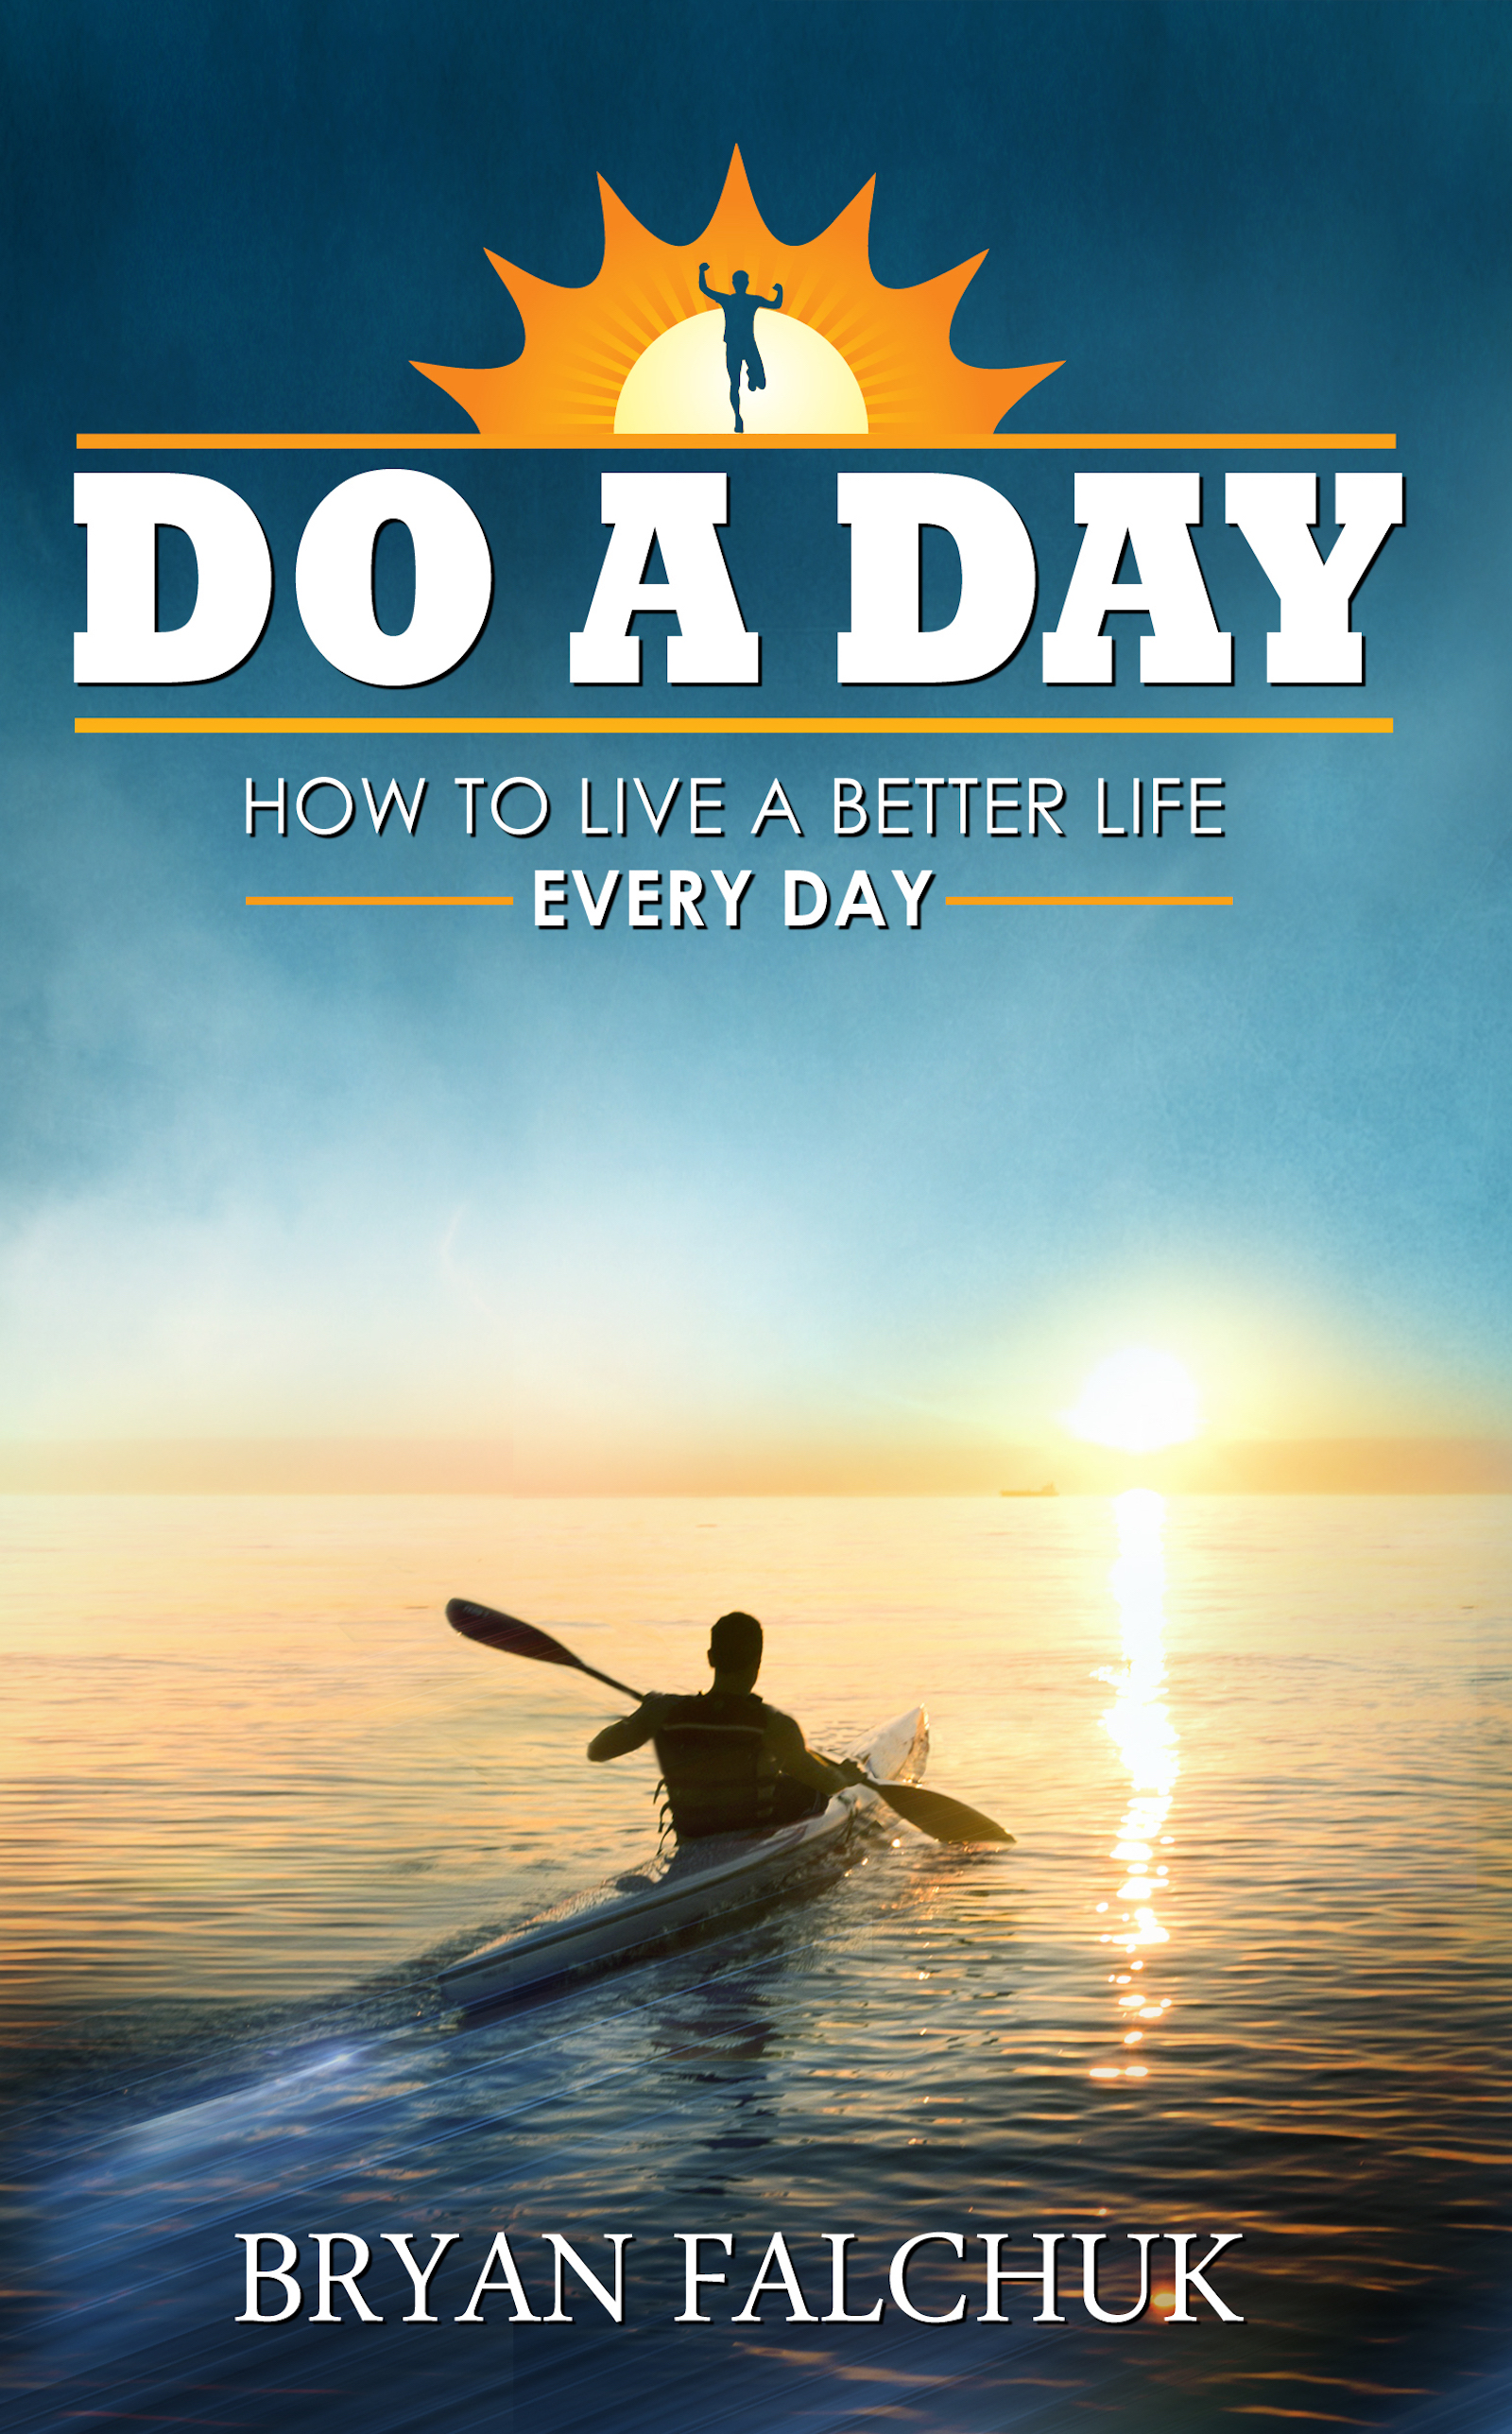 Do a Day: How to Live a Better Life Every Day